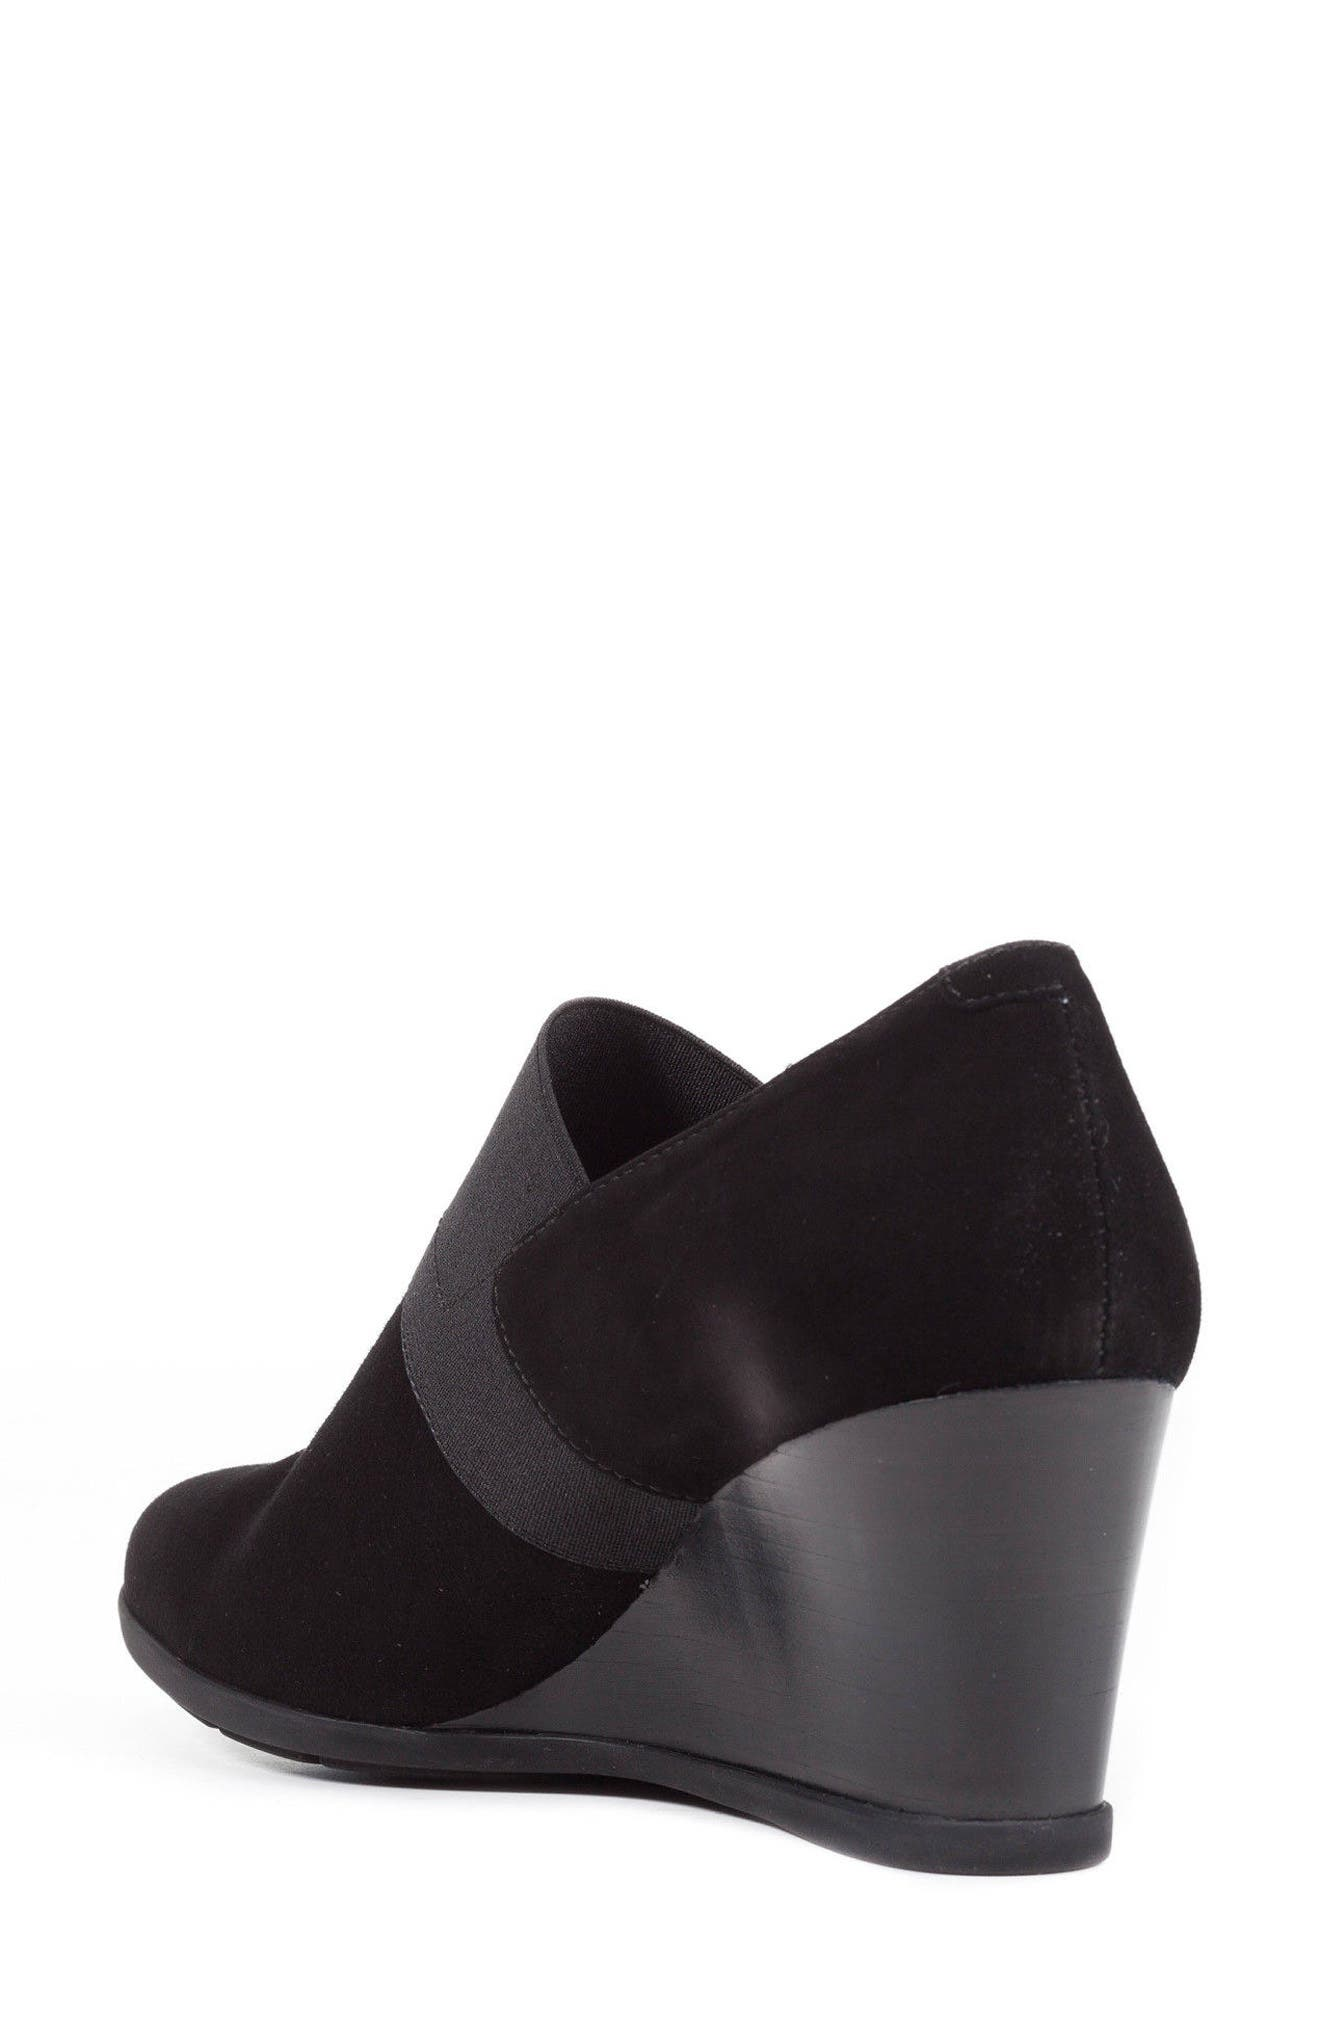 Inspiration Wedge,                             Alternate thumbnail 2, color,                             Black Suede